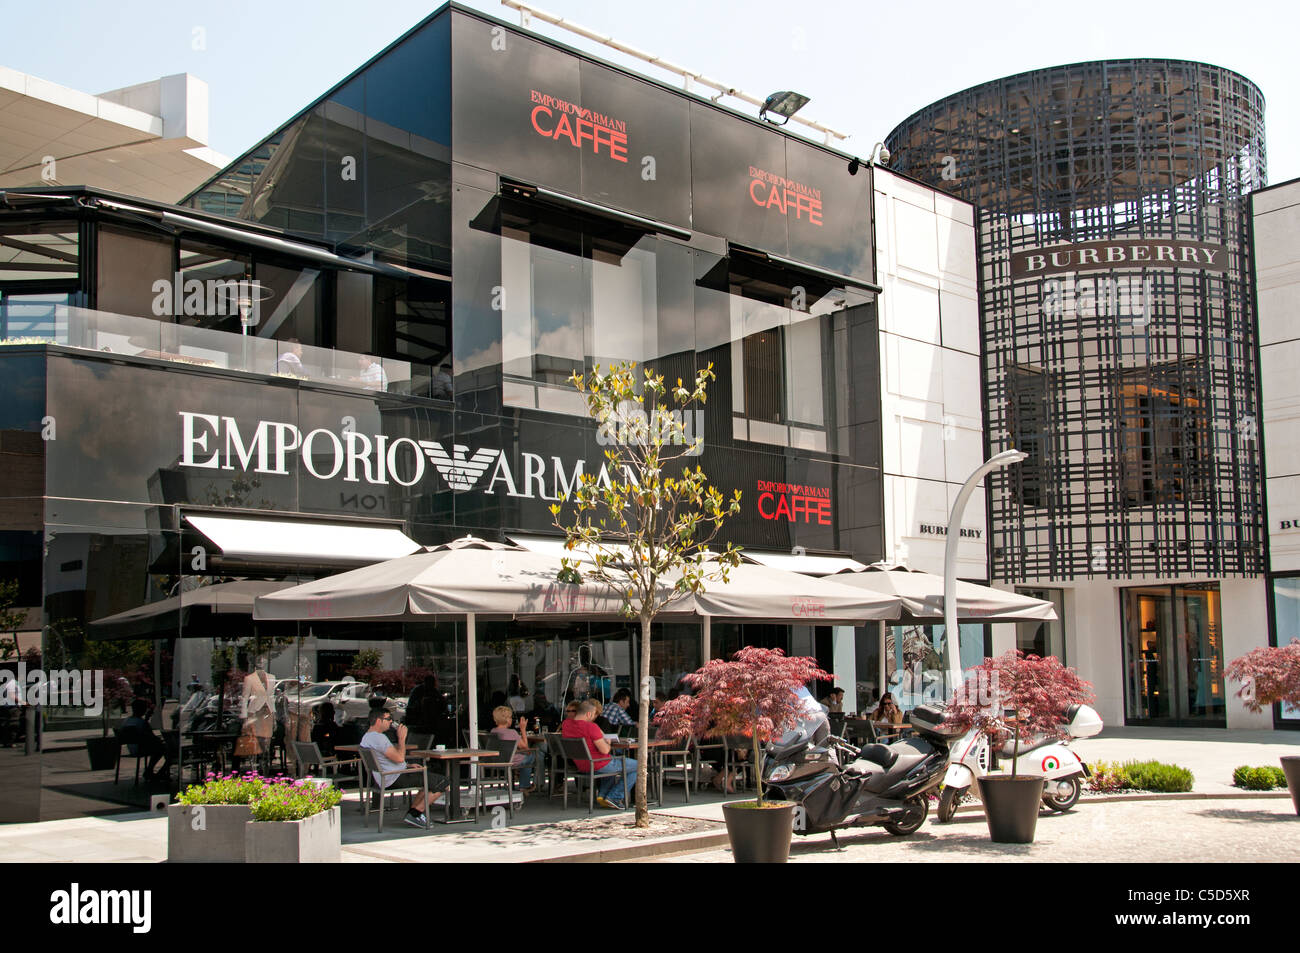 Emporio Armani Istanbul Istinye Park shopping mall is a unique urban lifestyle environment - Stock Image